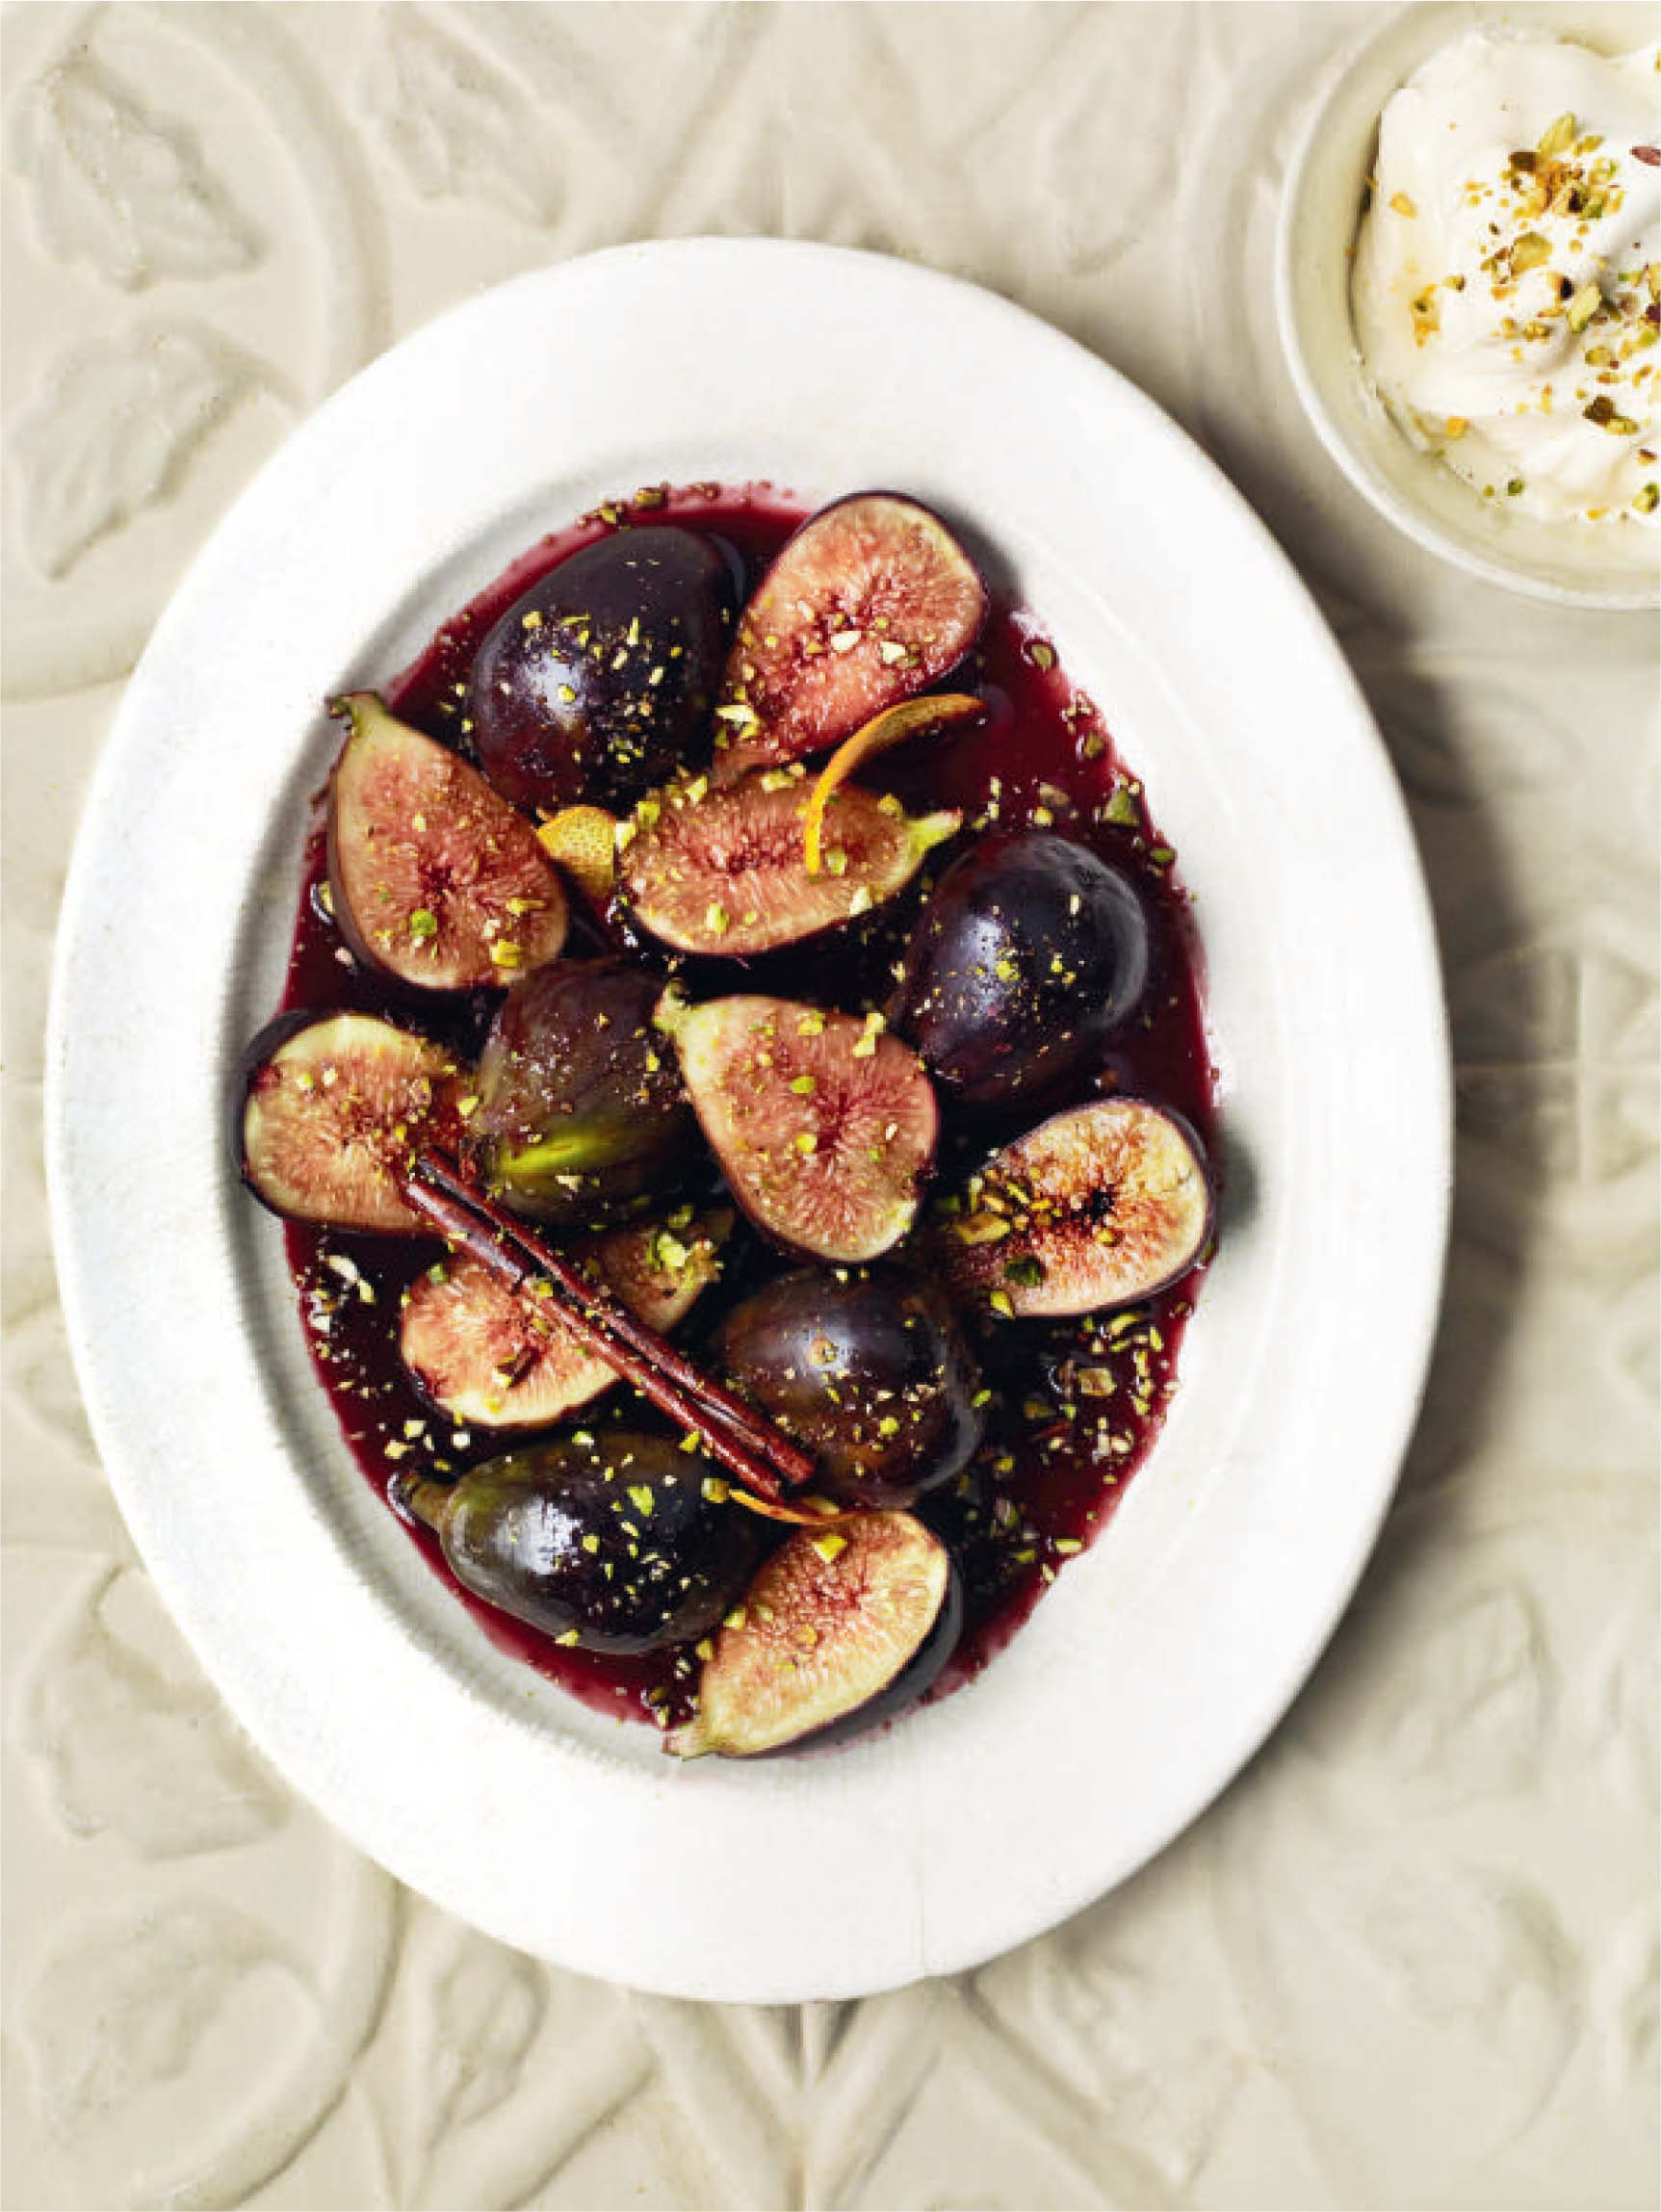 Drunken figs with pistachios and cream